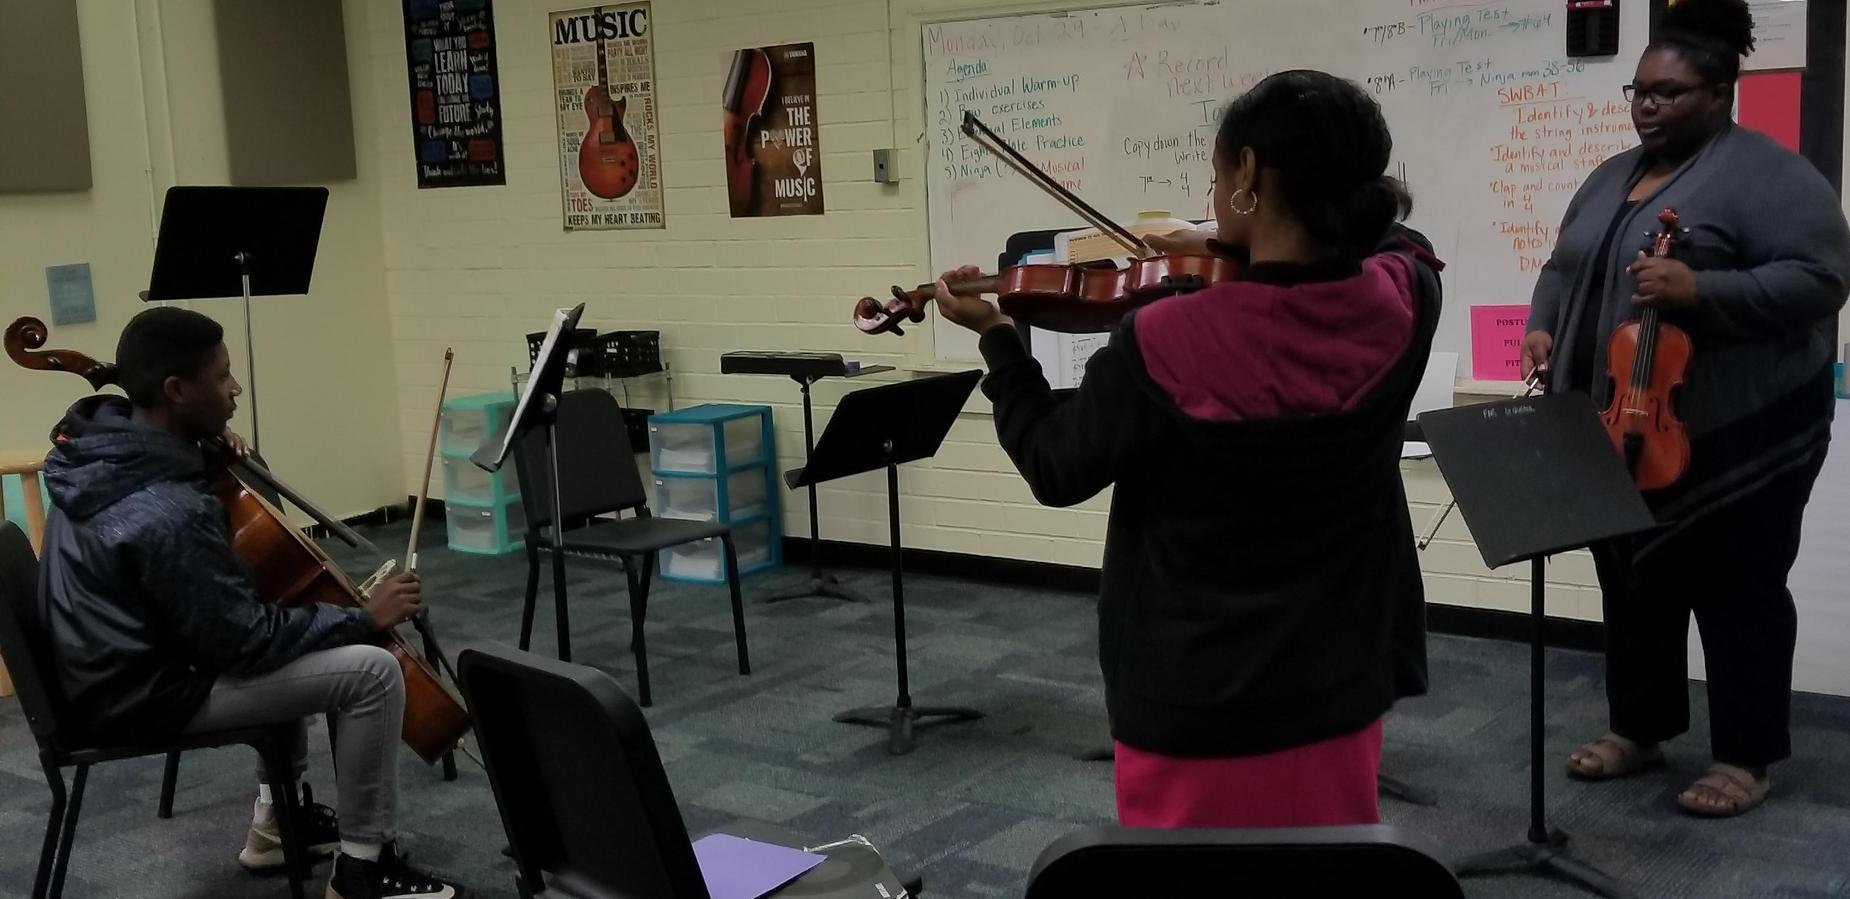 Orchestra Teacher and students practing